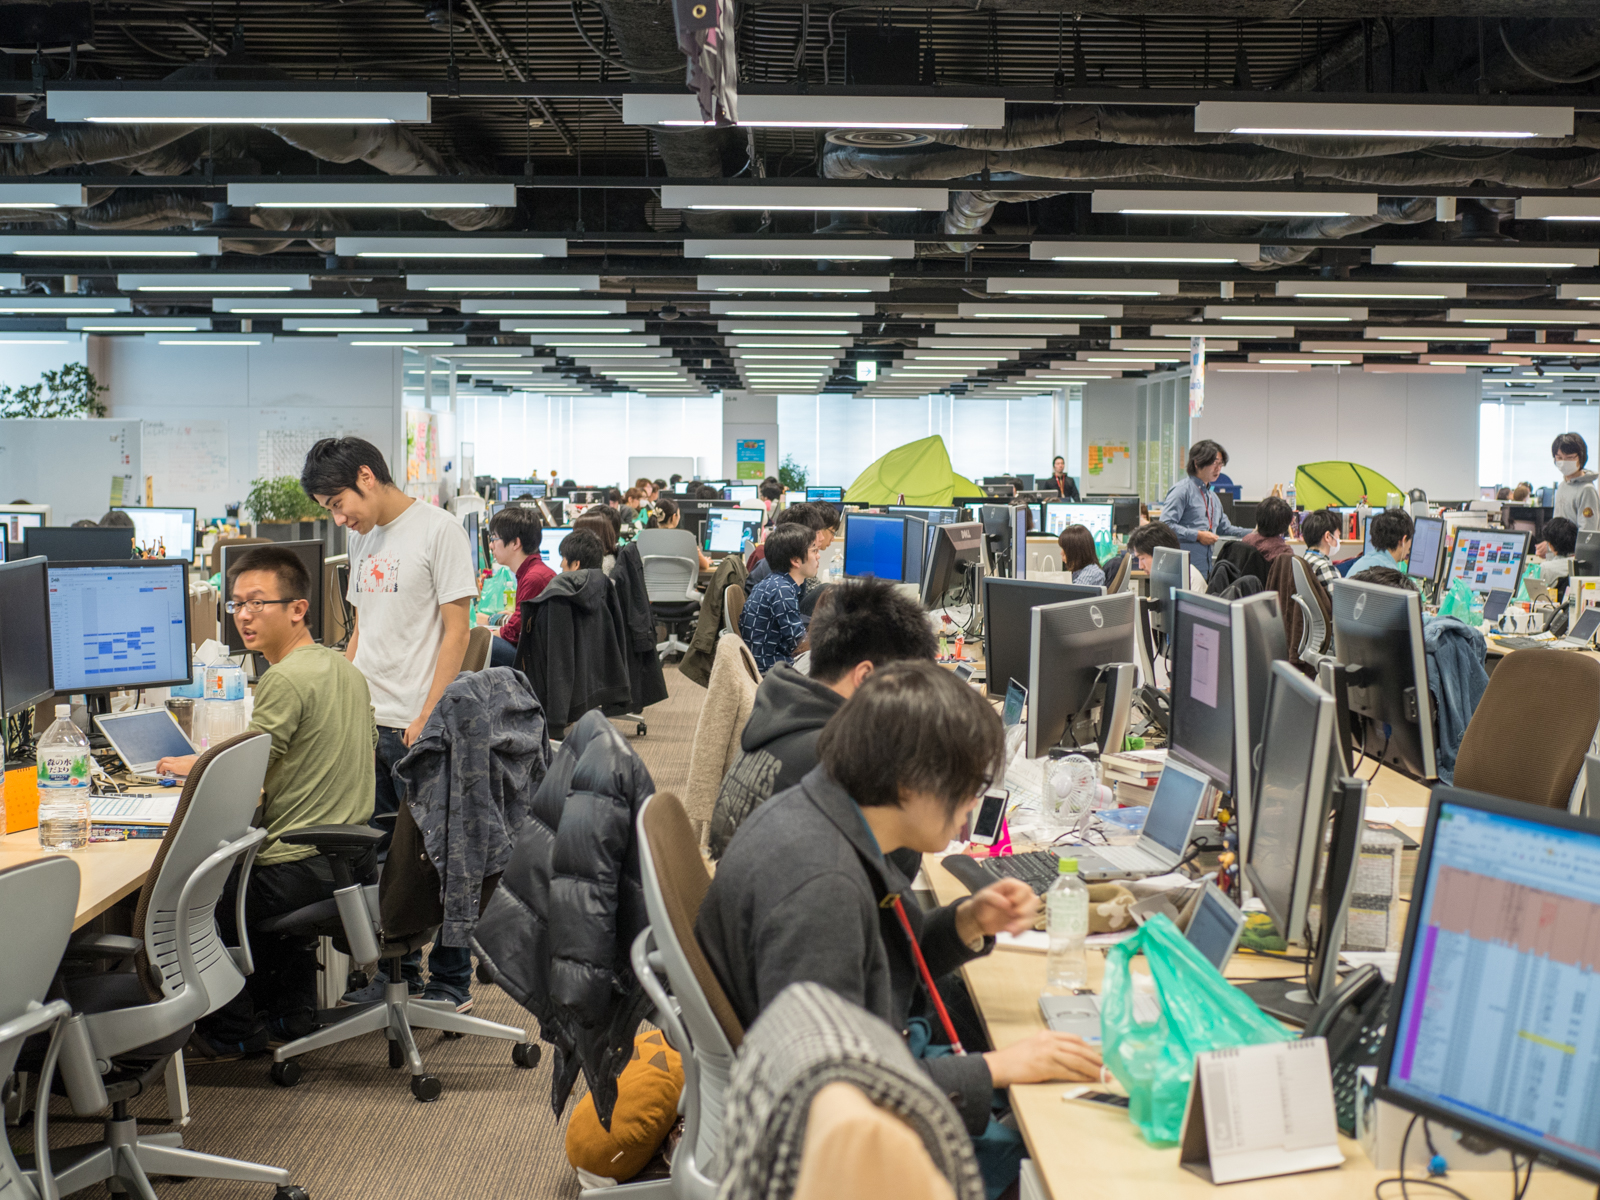 One of the work floors of the DeNA Tokyo headquarters, where employees work on games.